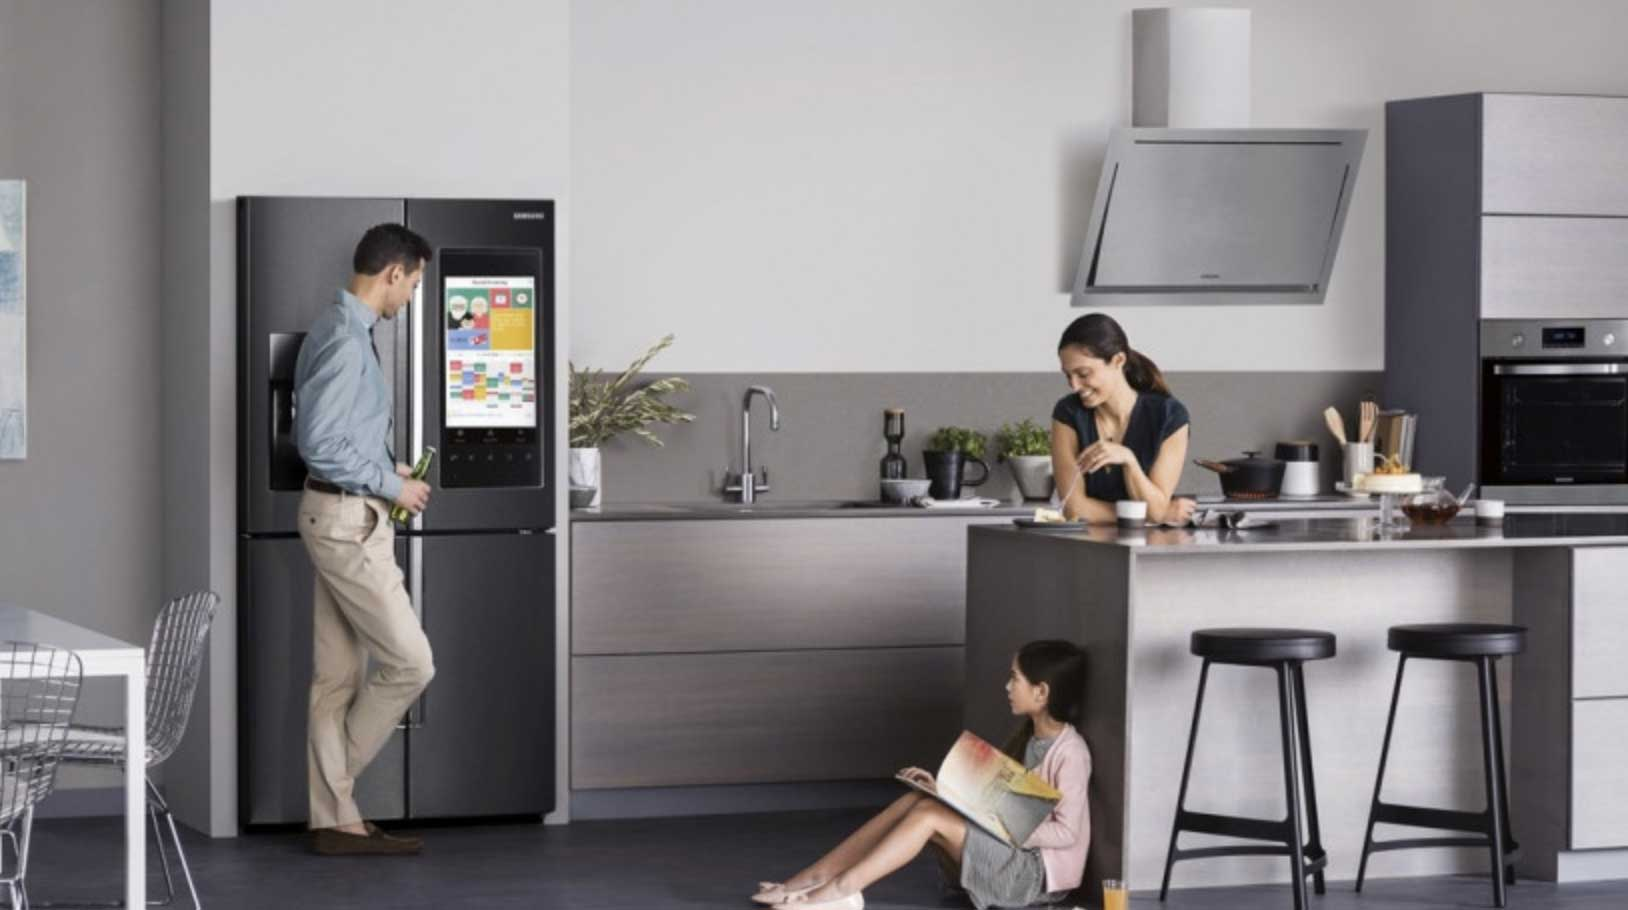 Image showing smart kitchen appliances used in a blog by forthefloorandmore.com